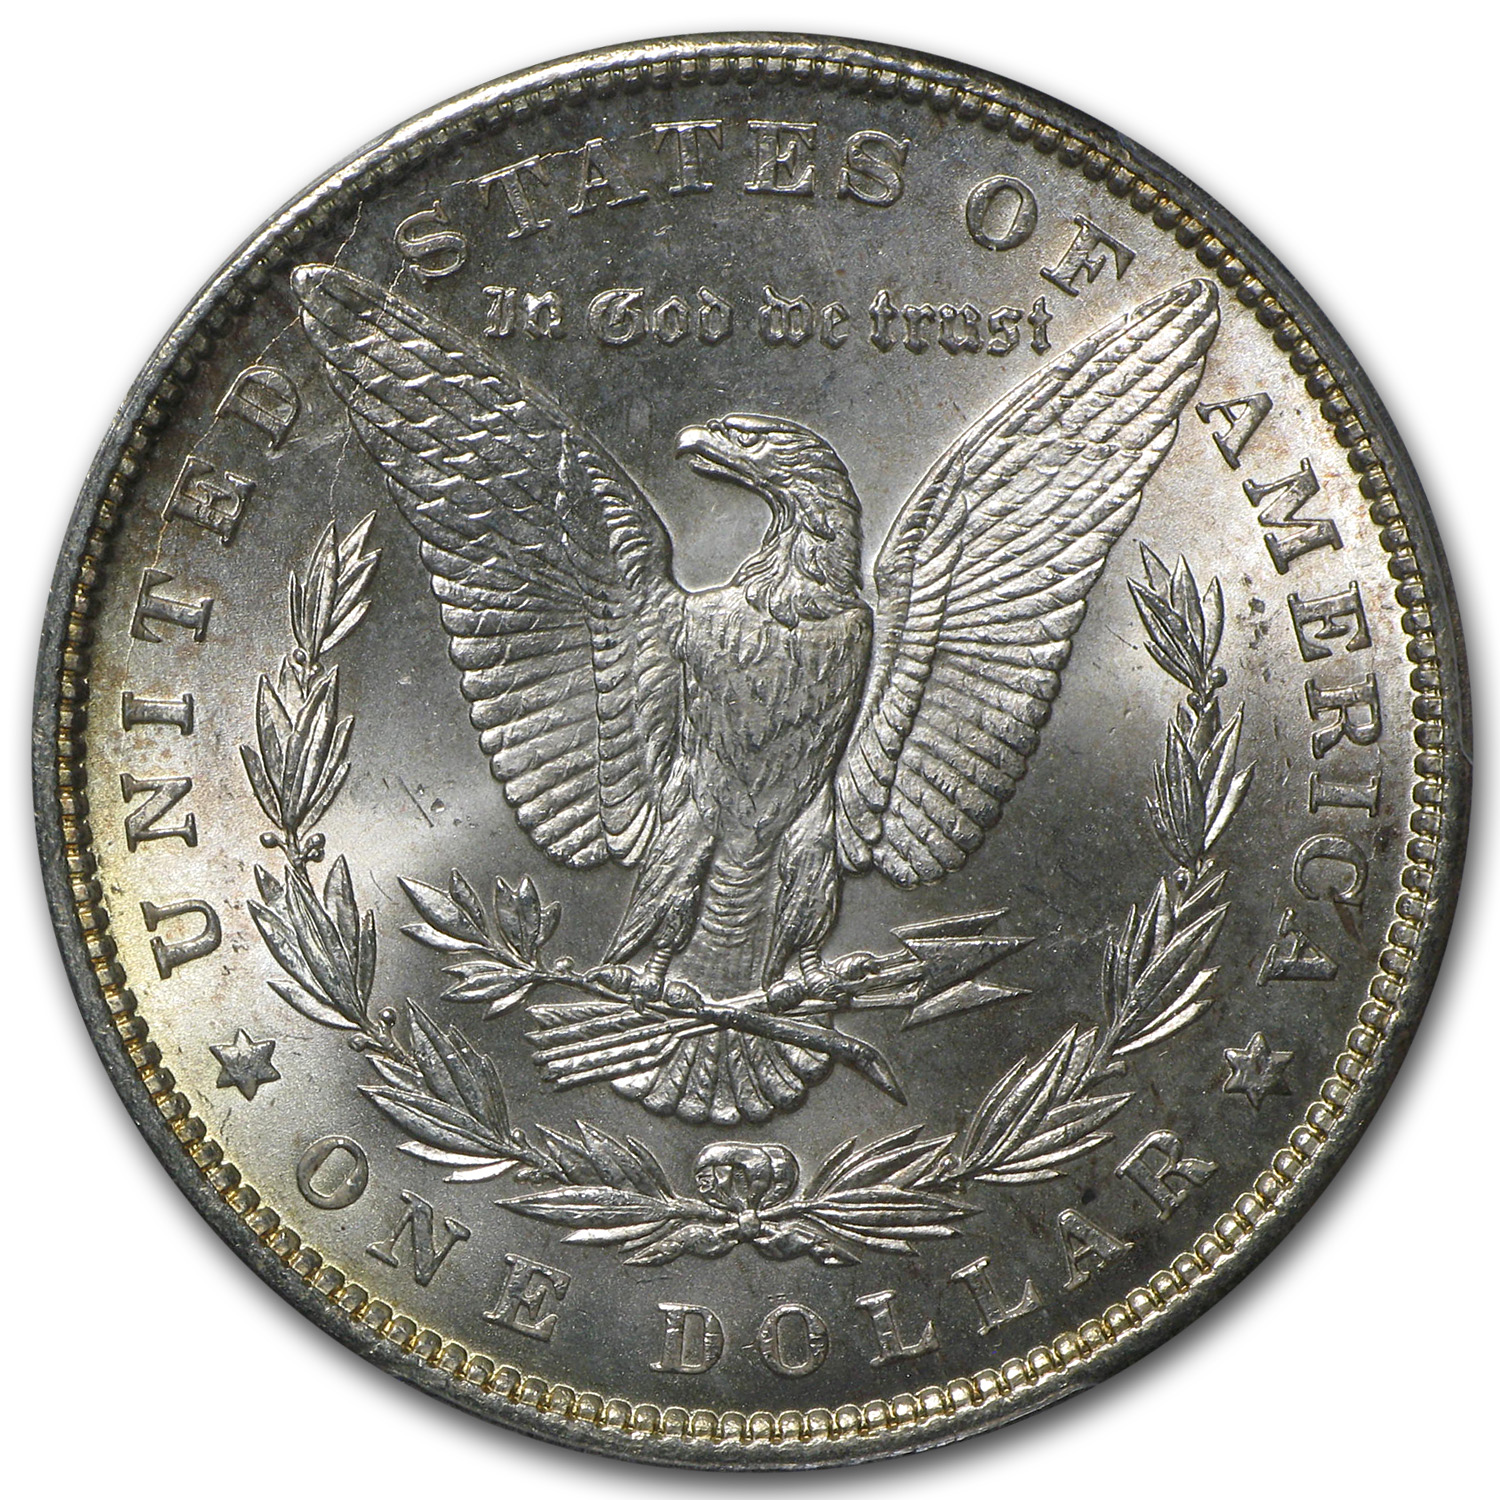 1897 Morgan Dollar - MS-64+ Plus PCGS - Beautiful Toning